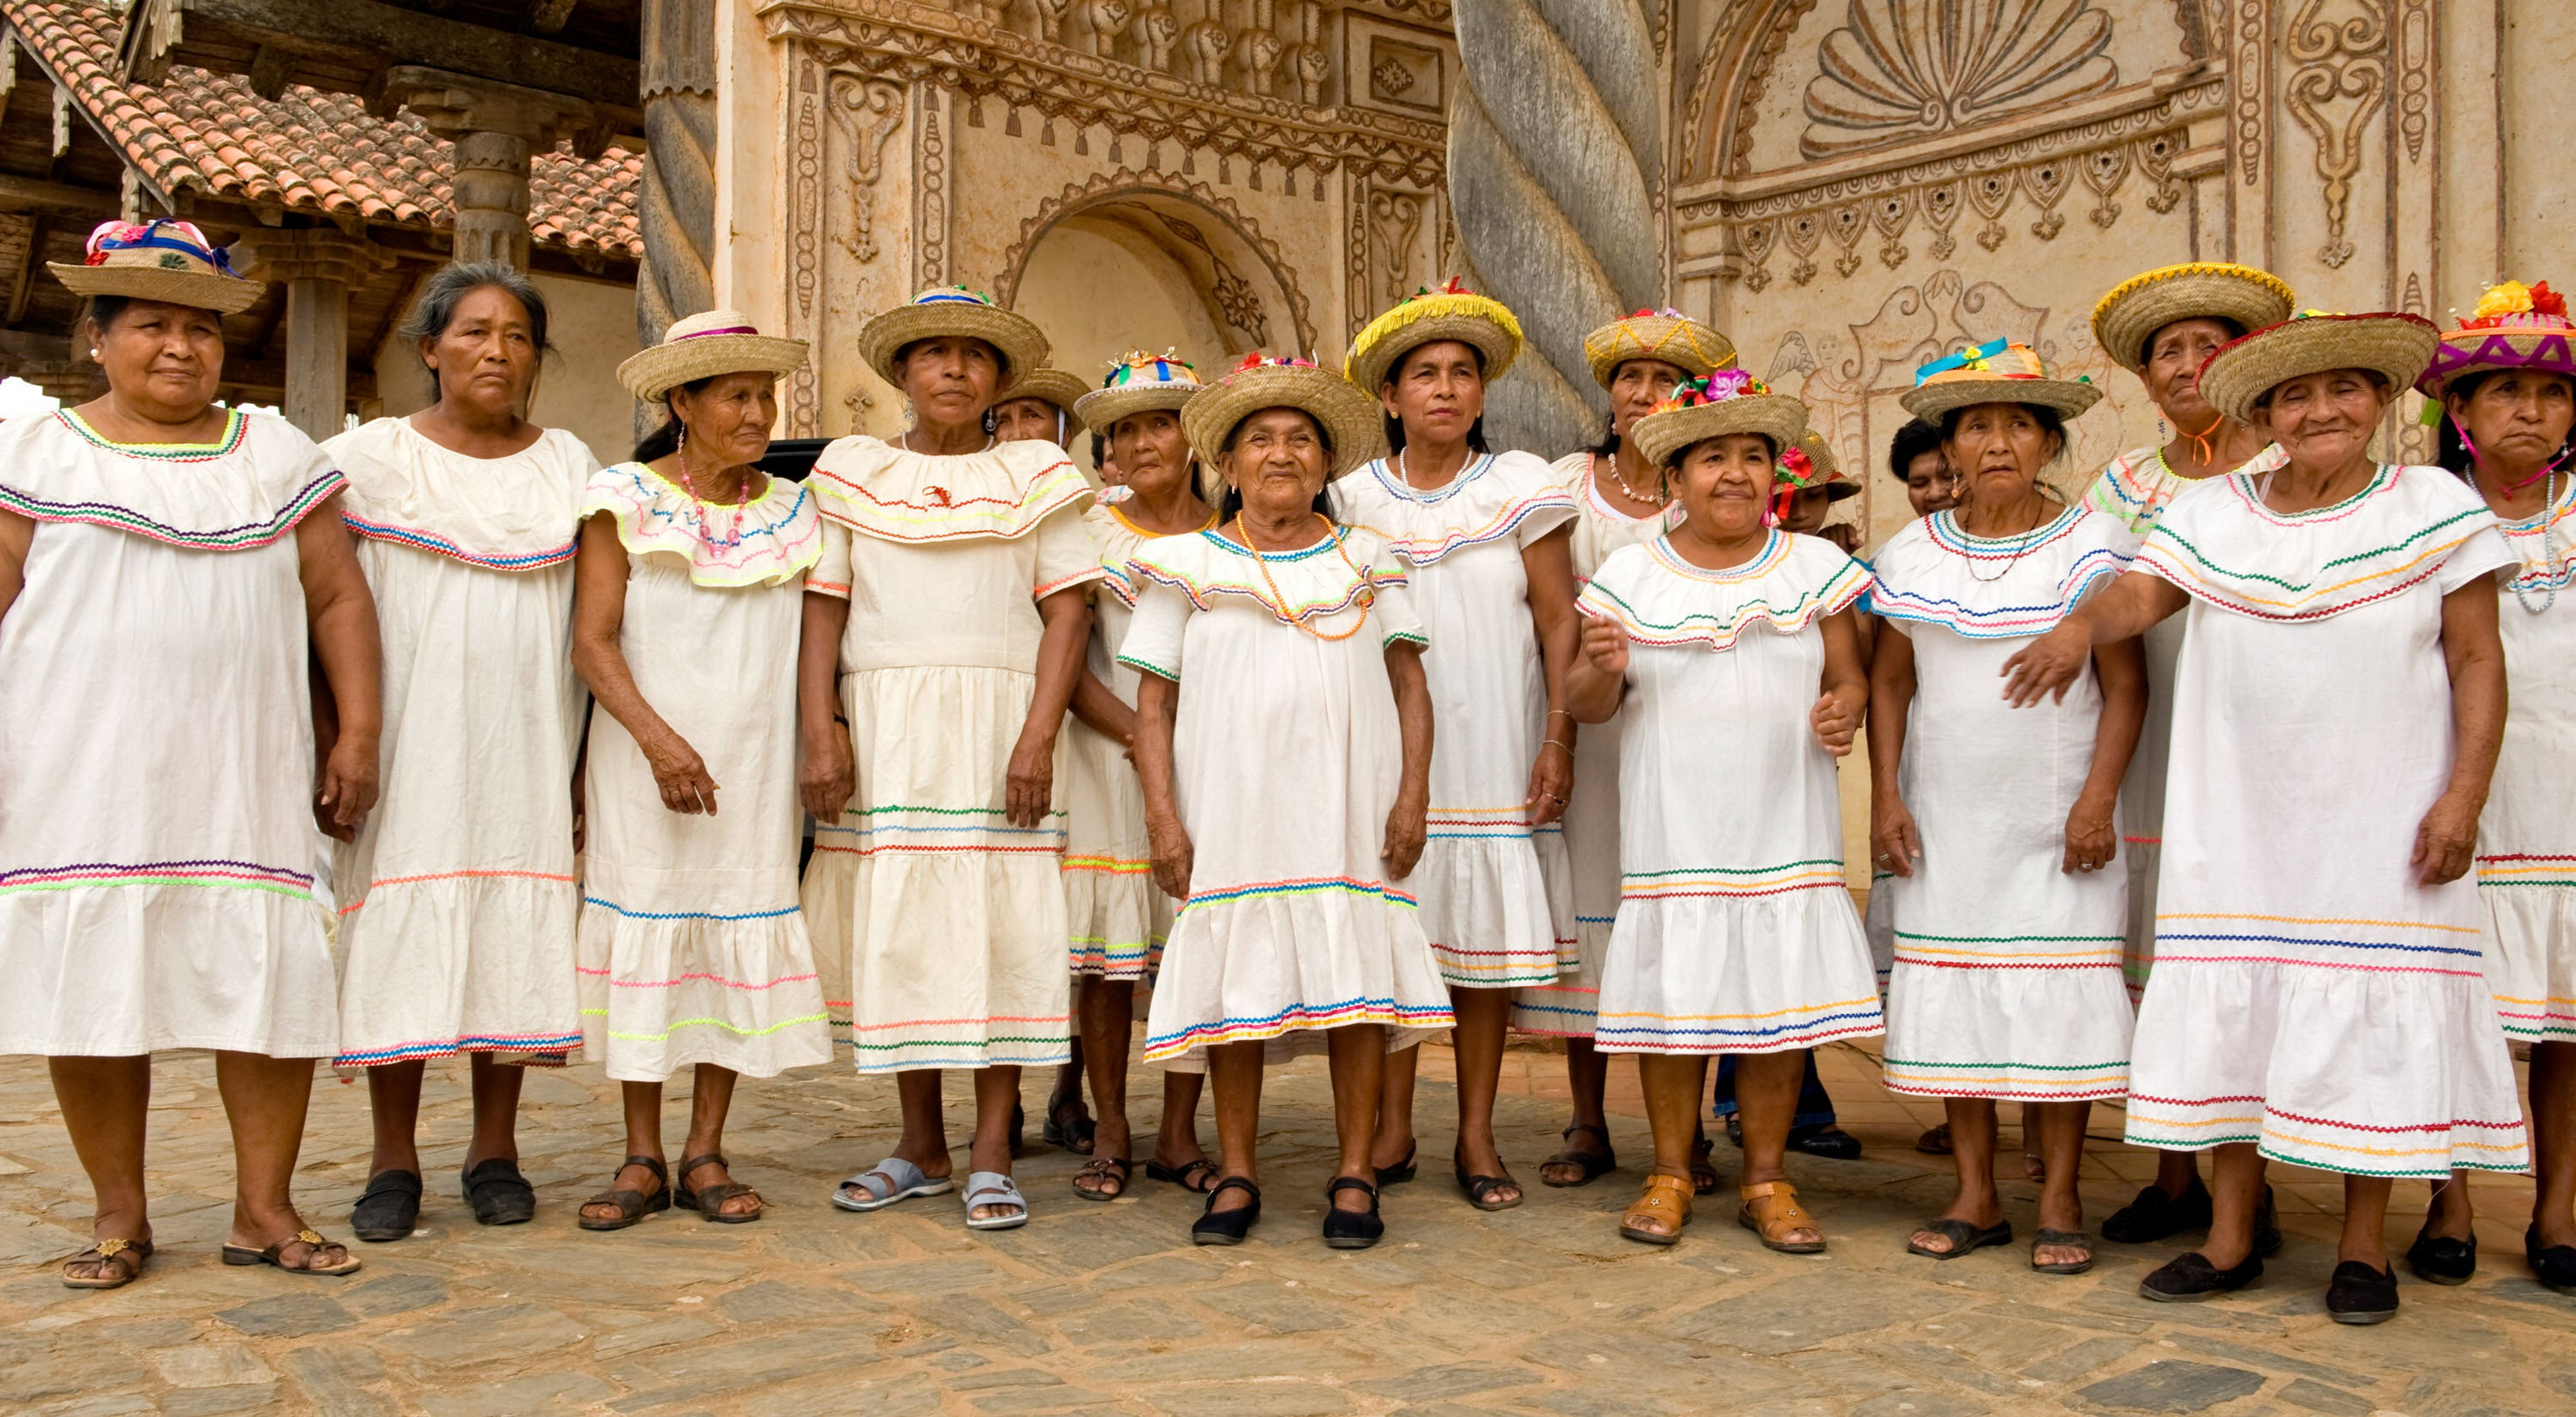 Bolivian women at a traditional ceremony during the Baroque Music Festival.